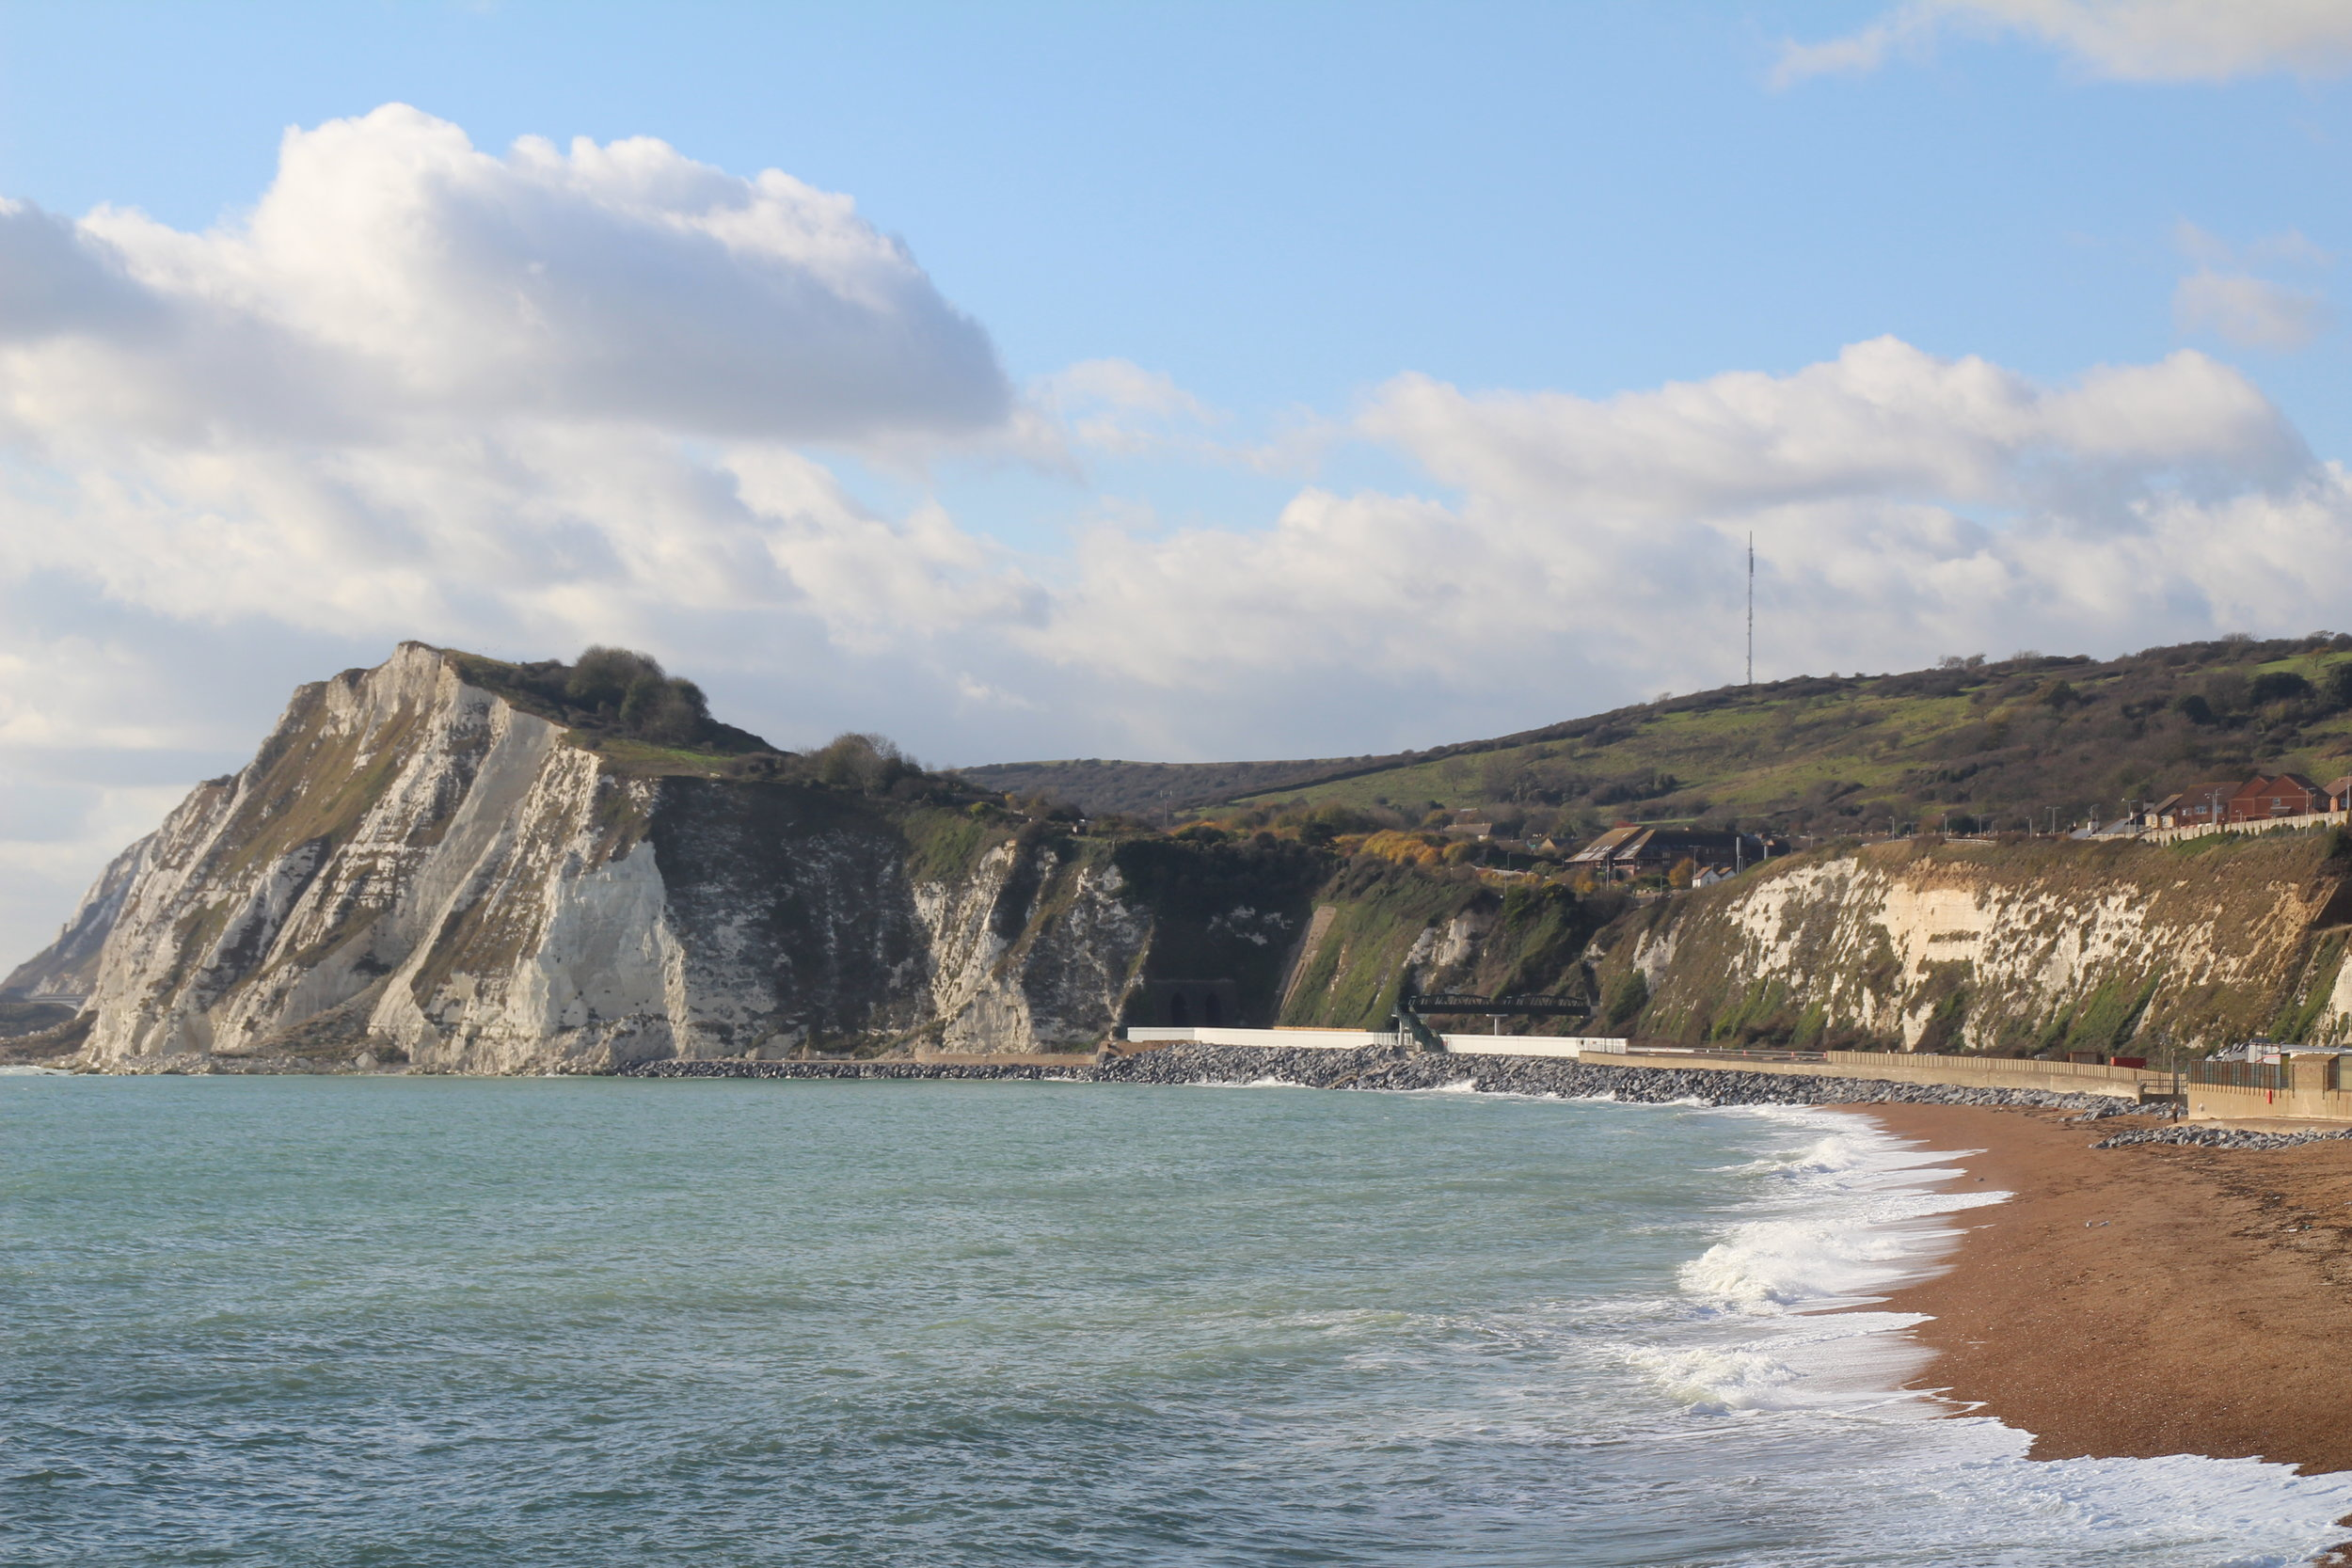 Shakespeares Cliff, Dover